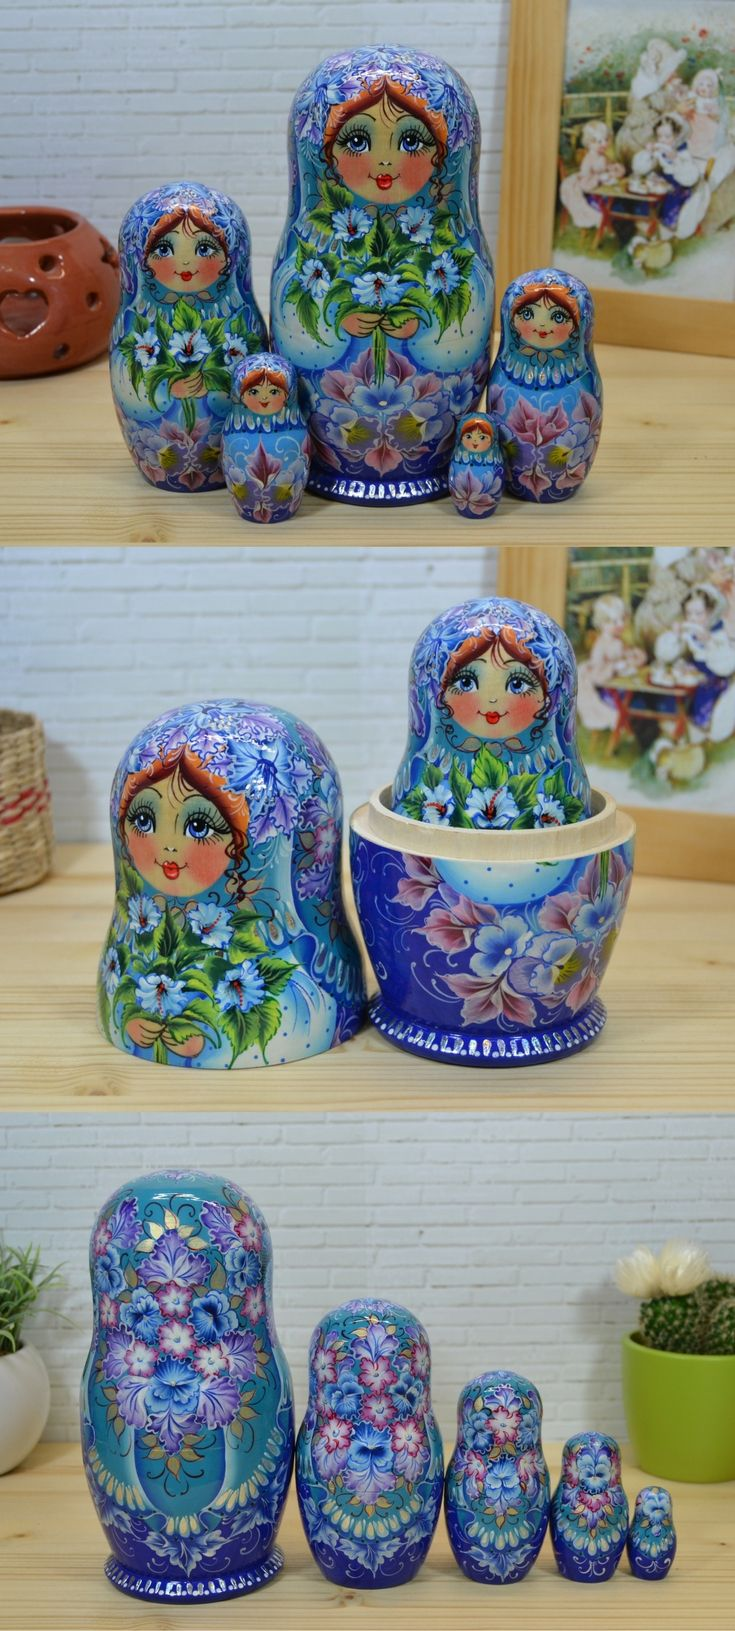 Russian nesting dolls in blue attire